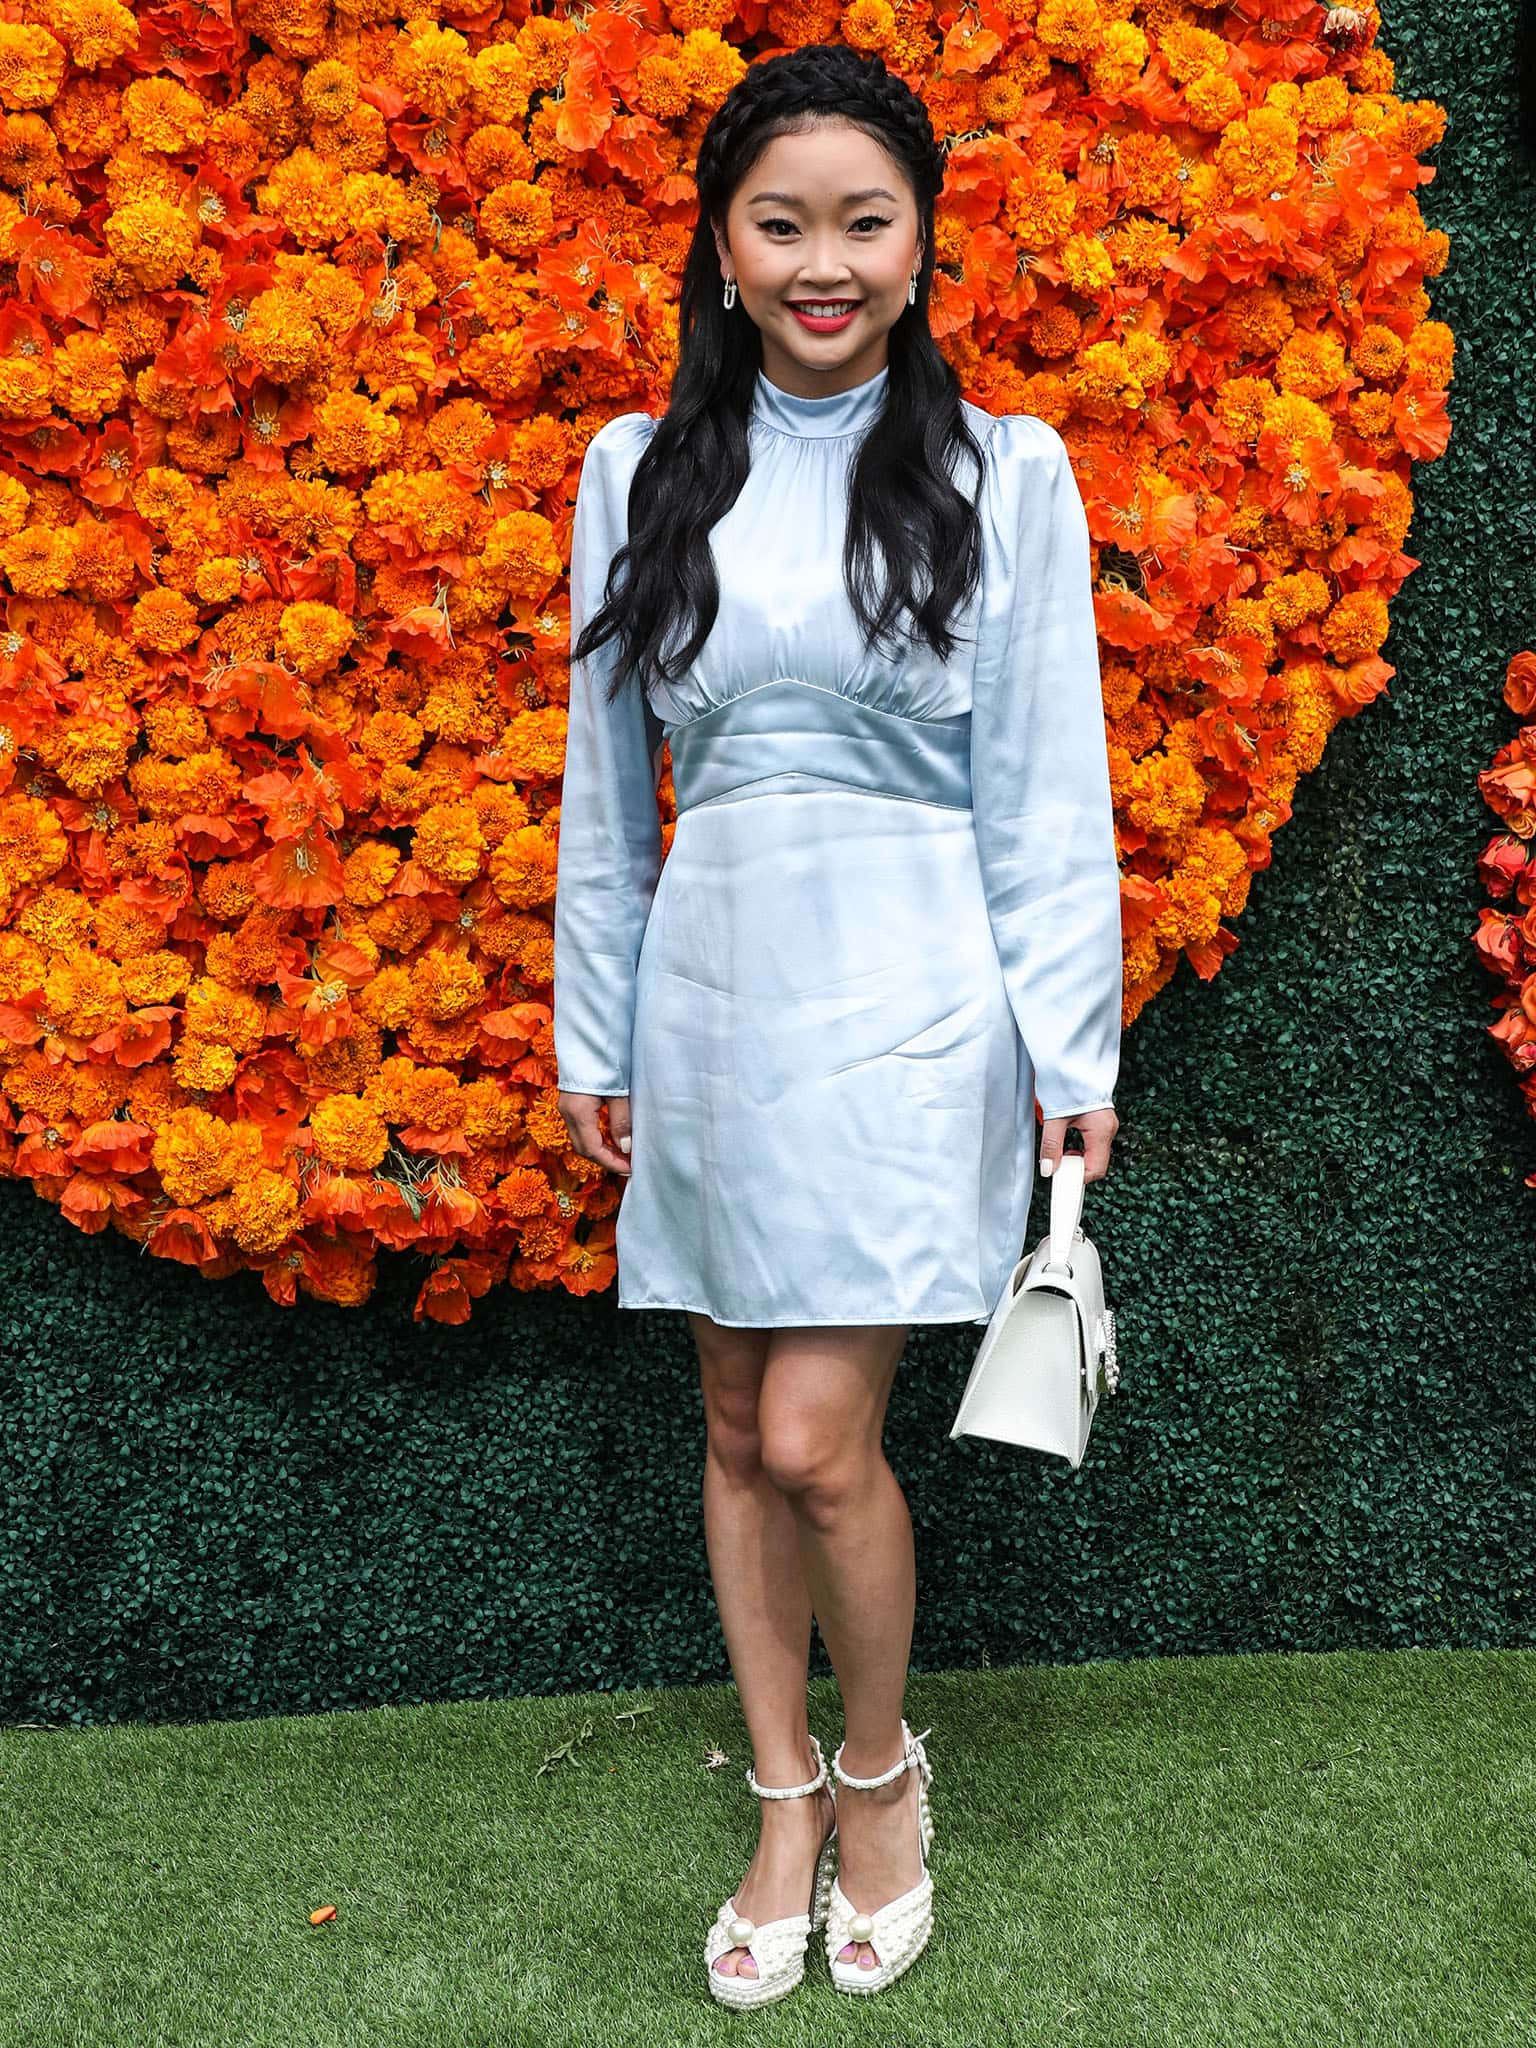 Lana Condor wears a Reformation light blue satin mini dress with puff long sleeves